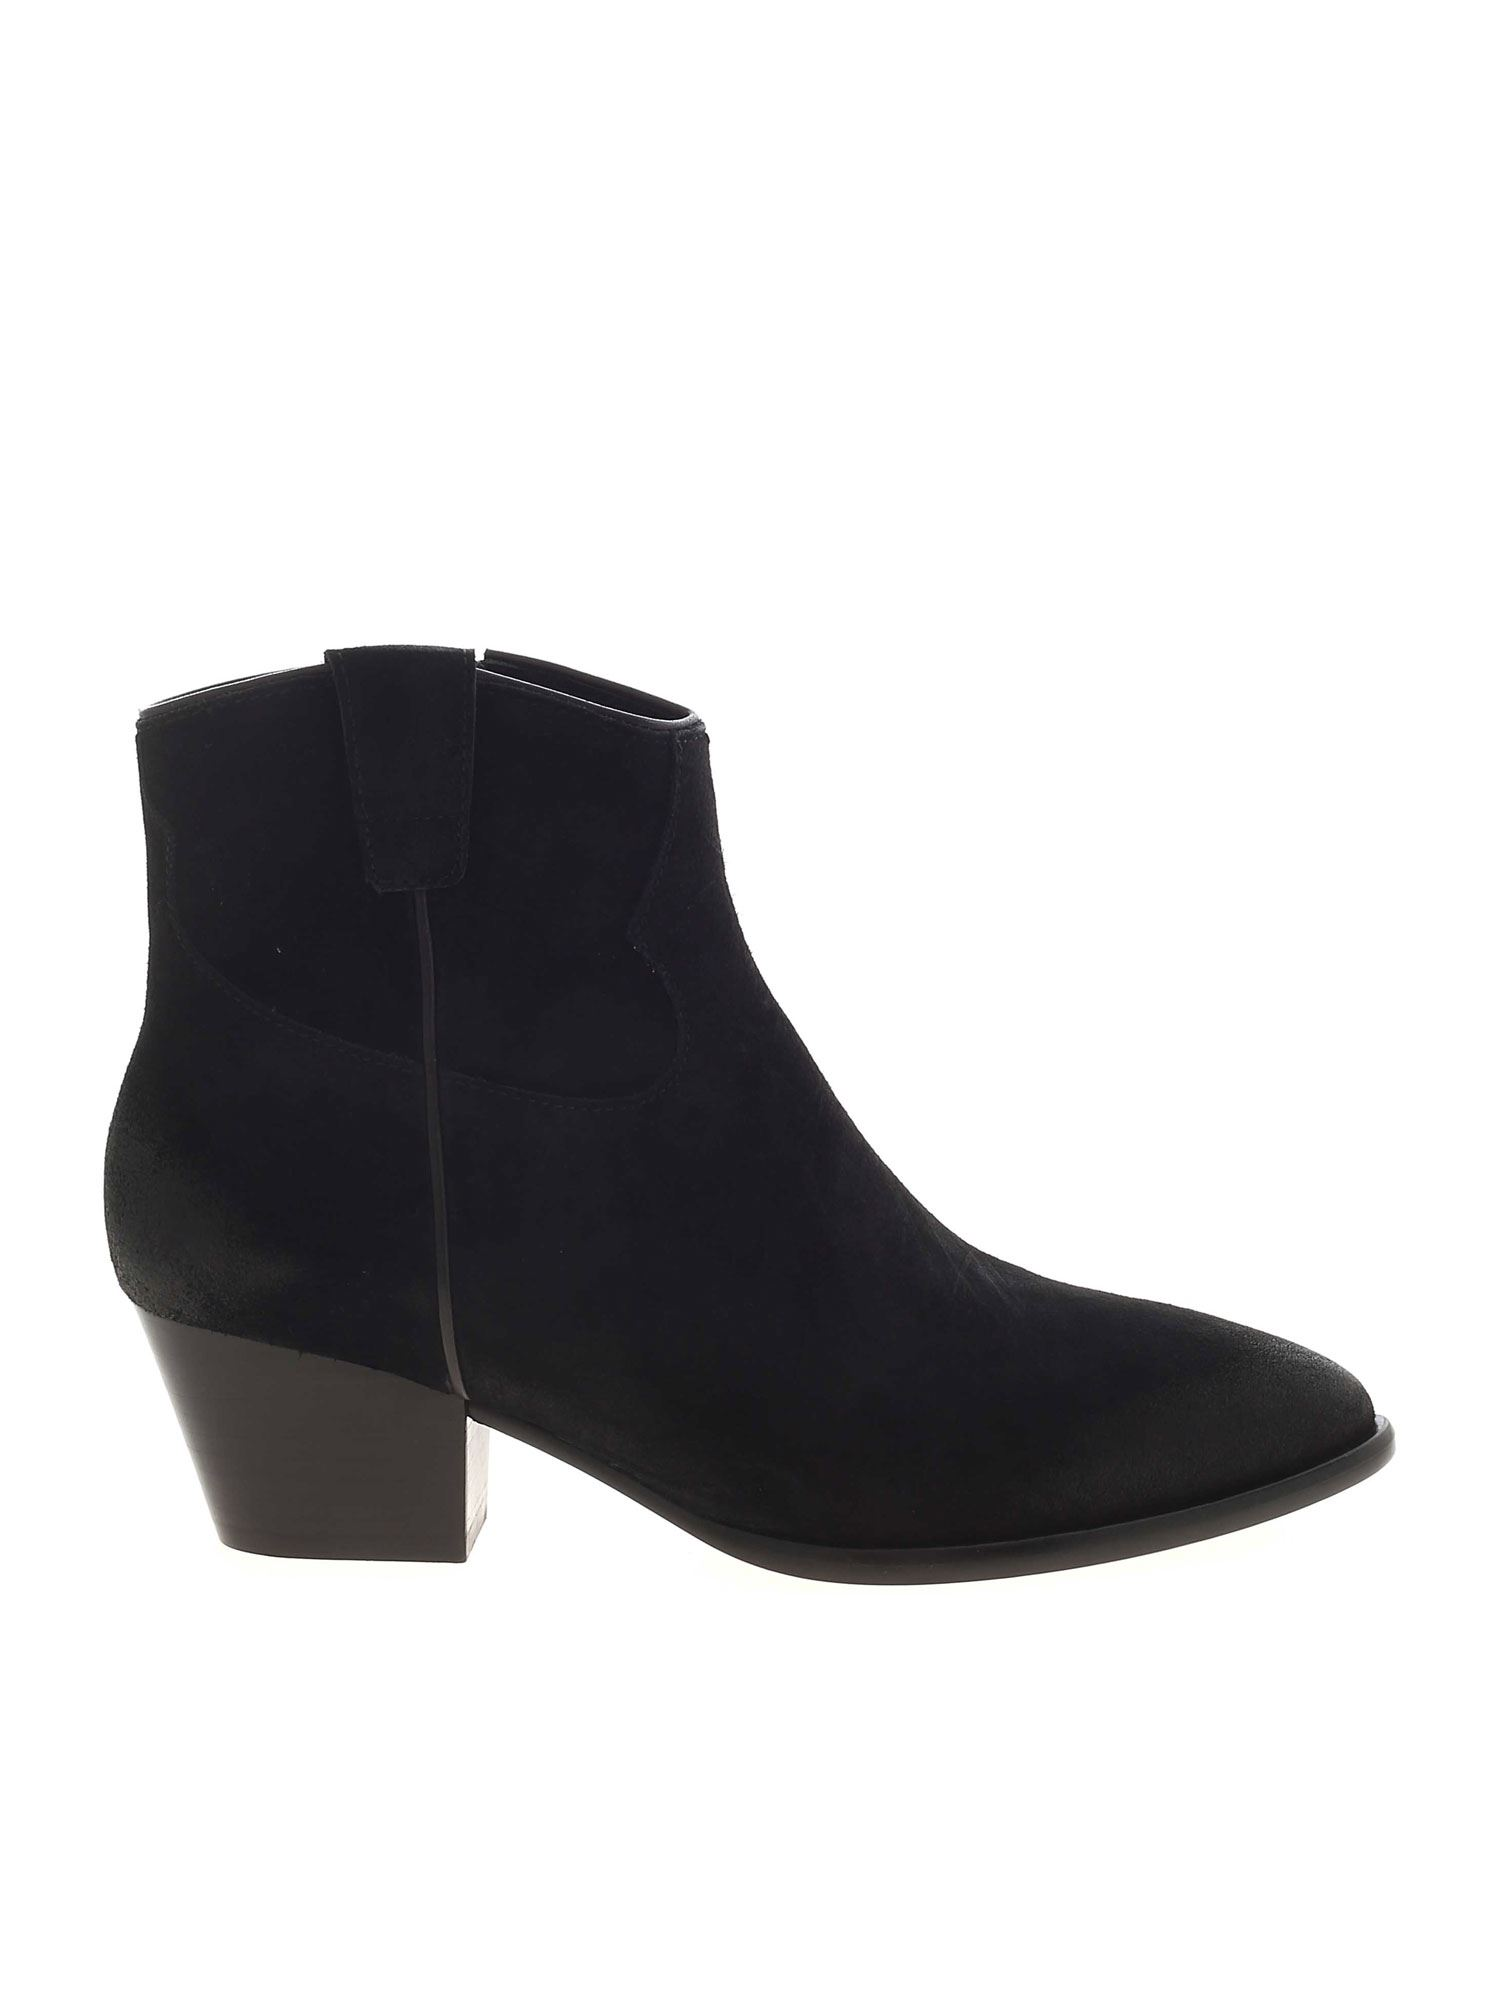 ASH HOUSTON POINTED ANKLE BOOTS IN BLACK